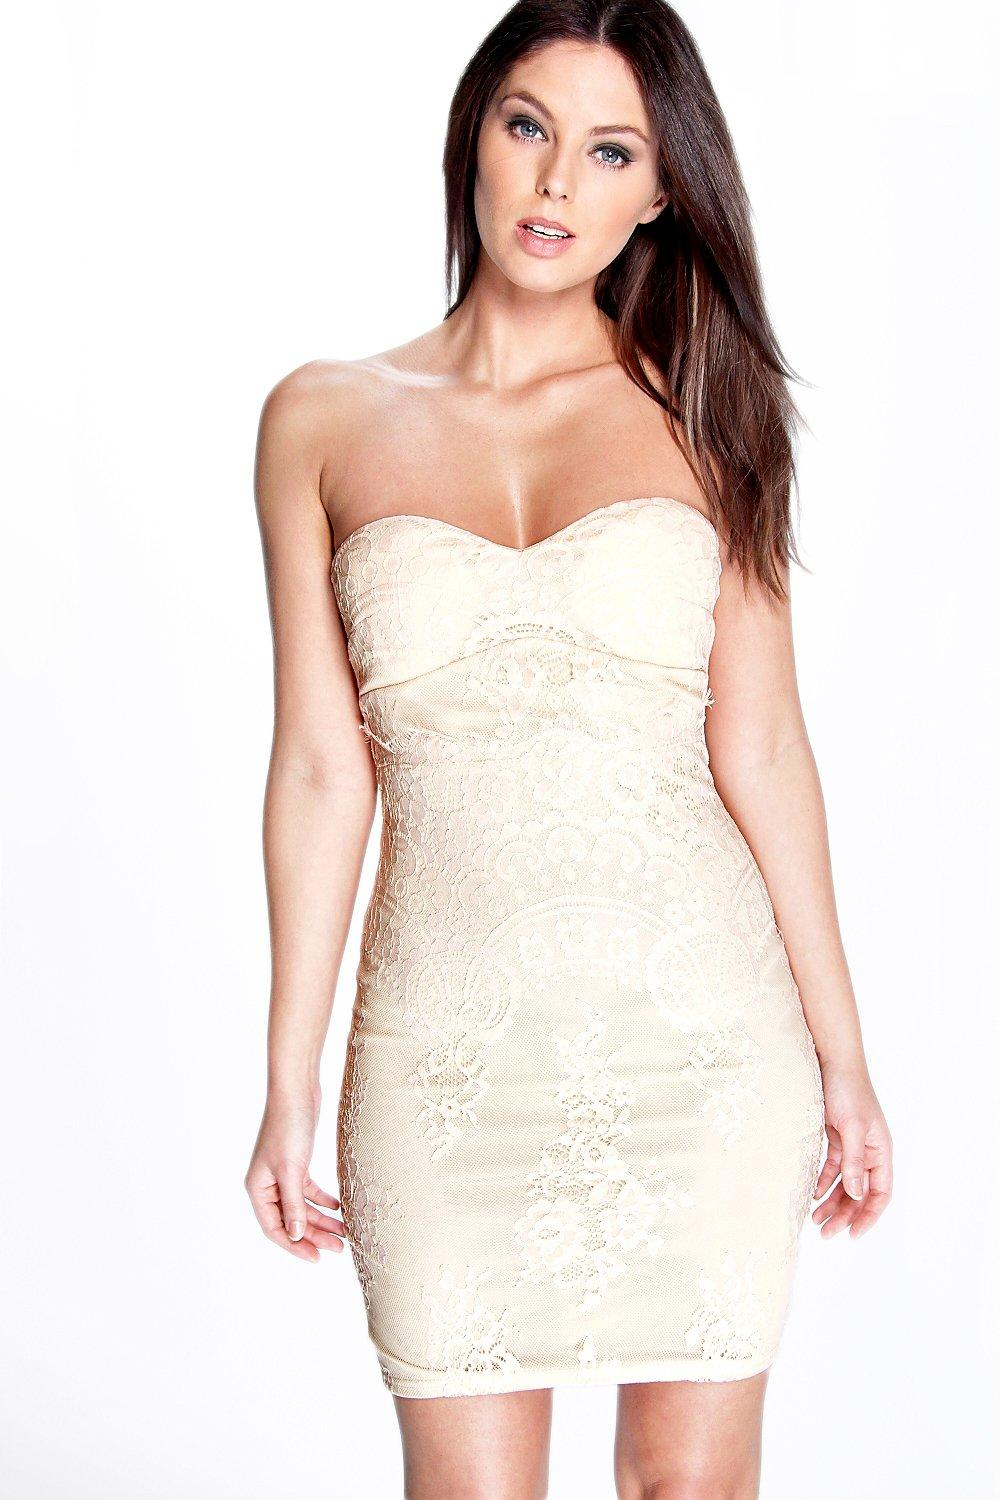 Hazel Eyelash Lace Bandeau Bodycon Dress